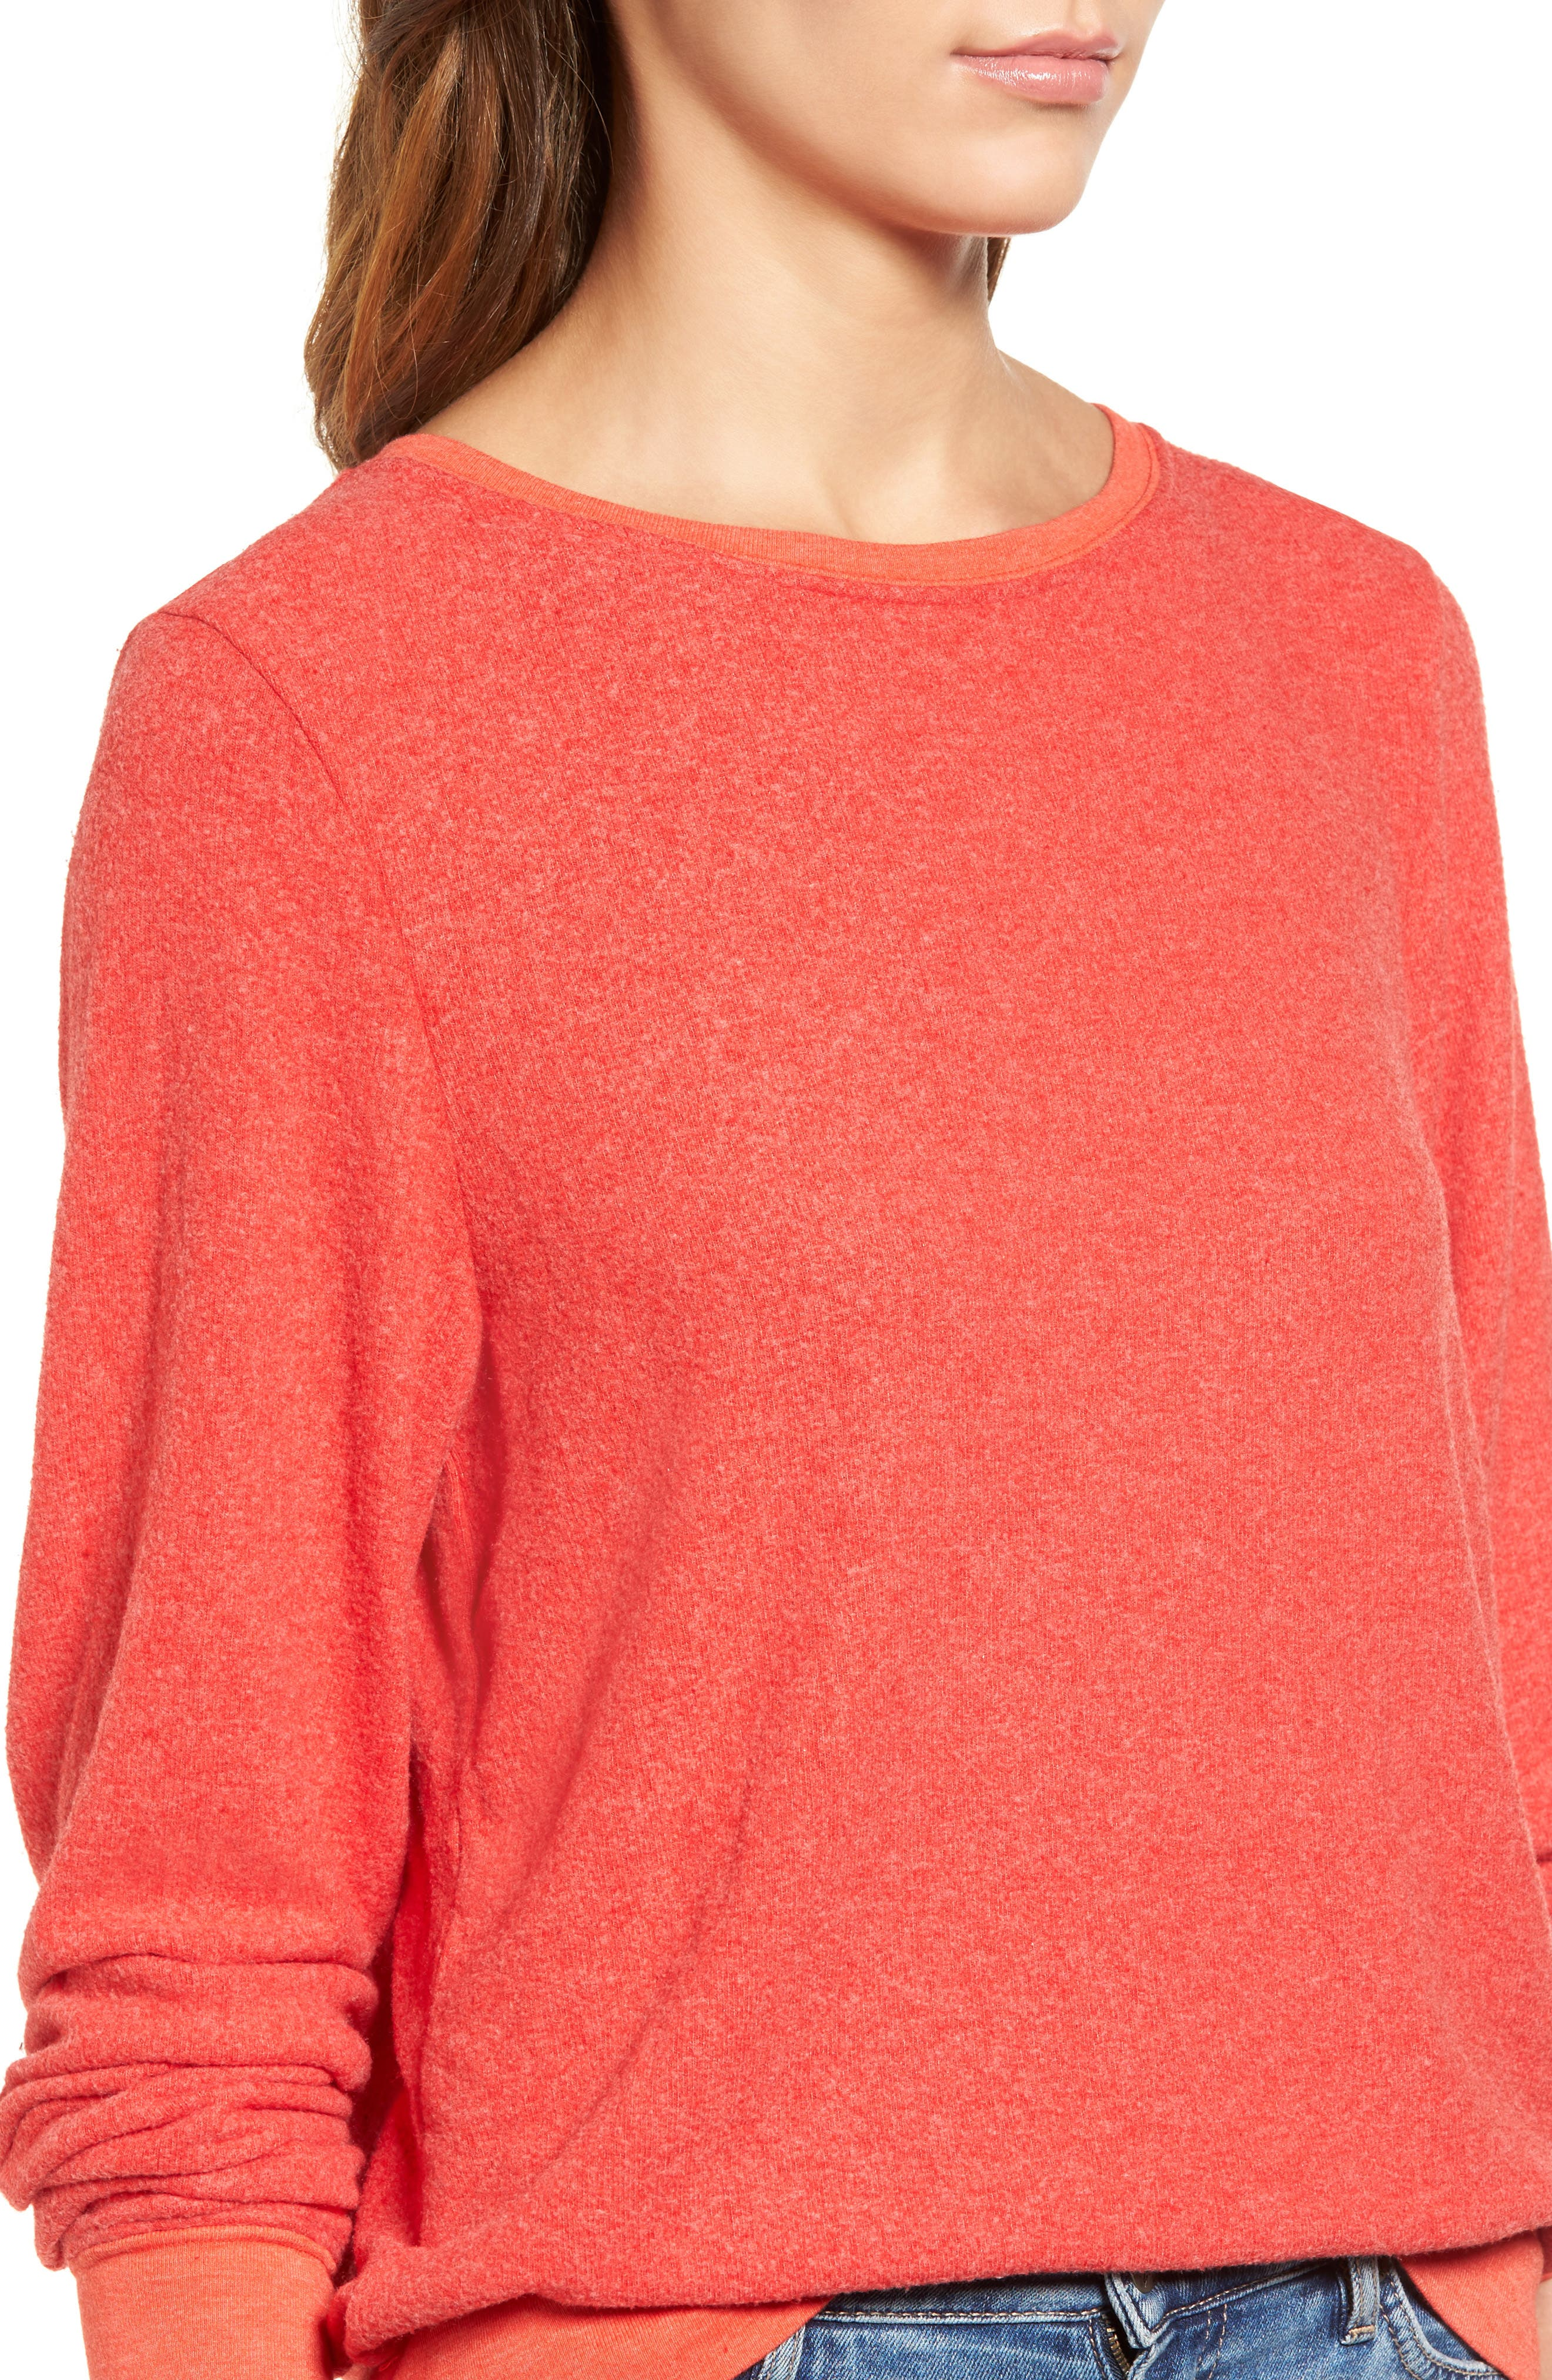 'Baggy Beach Jumper' Pullover,                             Alternate thumbnail 152, color,